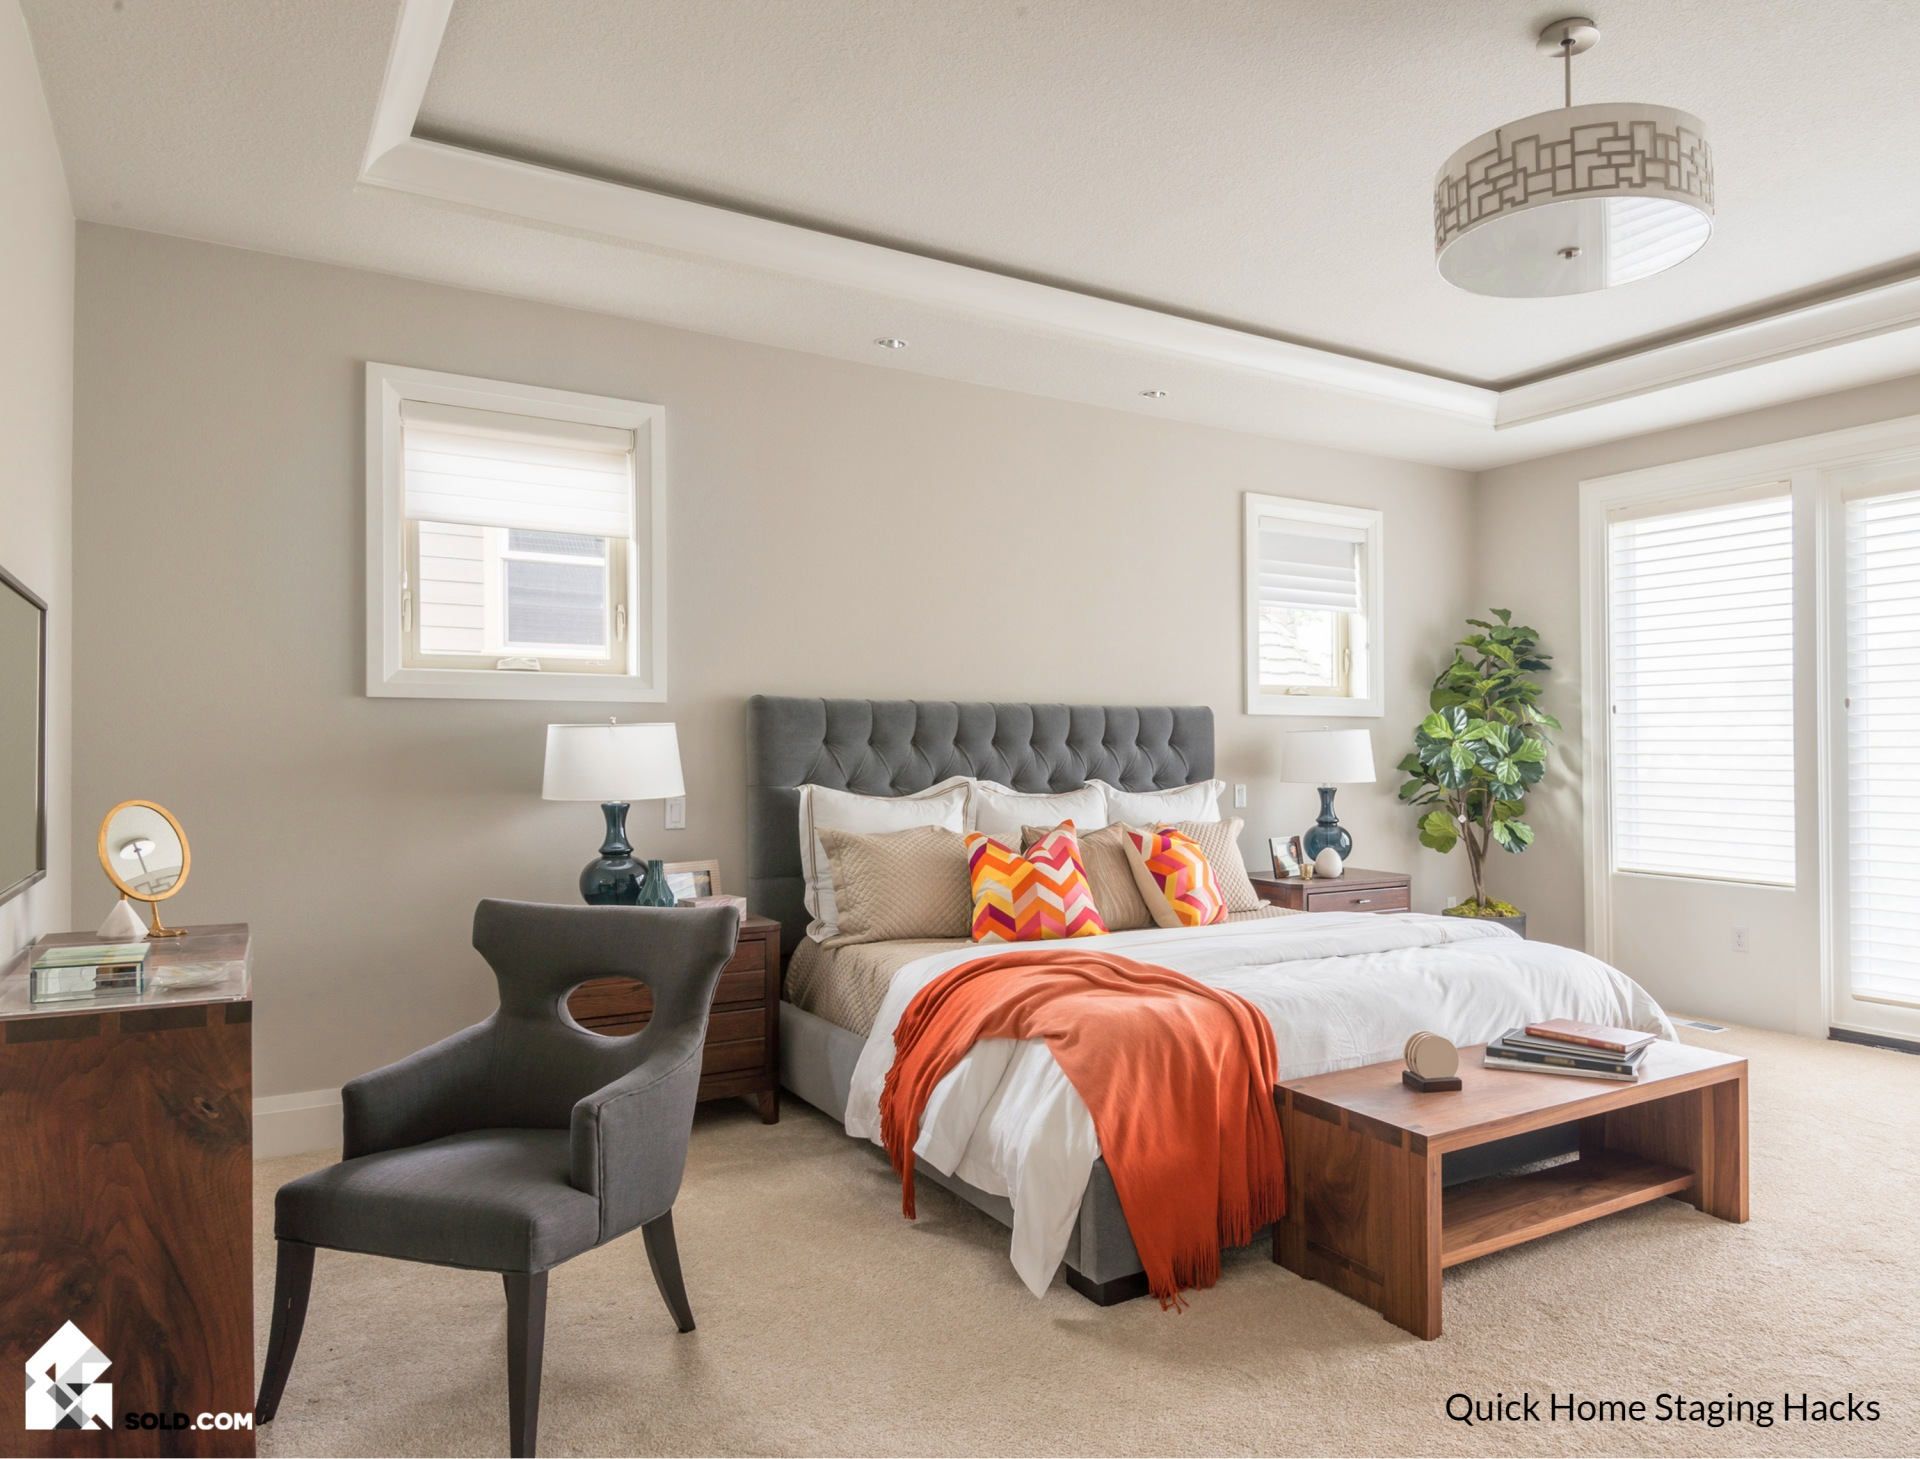 Quick Hacks for Home Staging